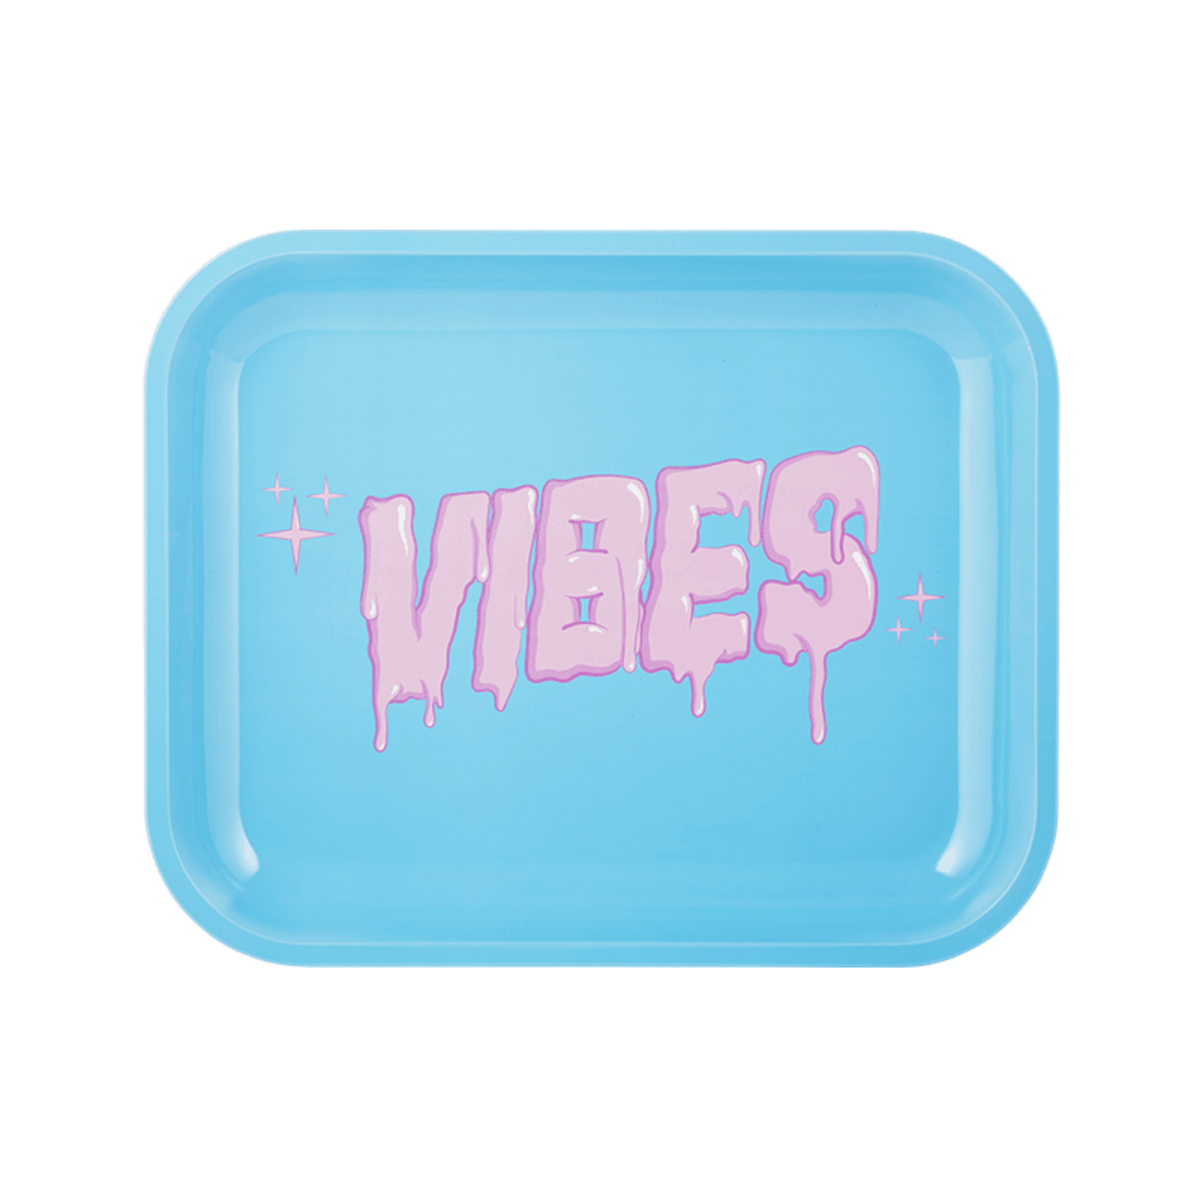 Vibes Catch a Vibe Metal Rolling Tray